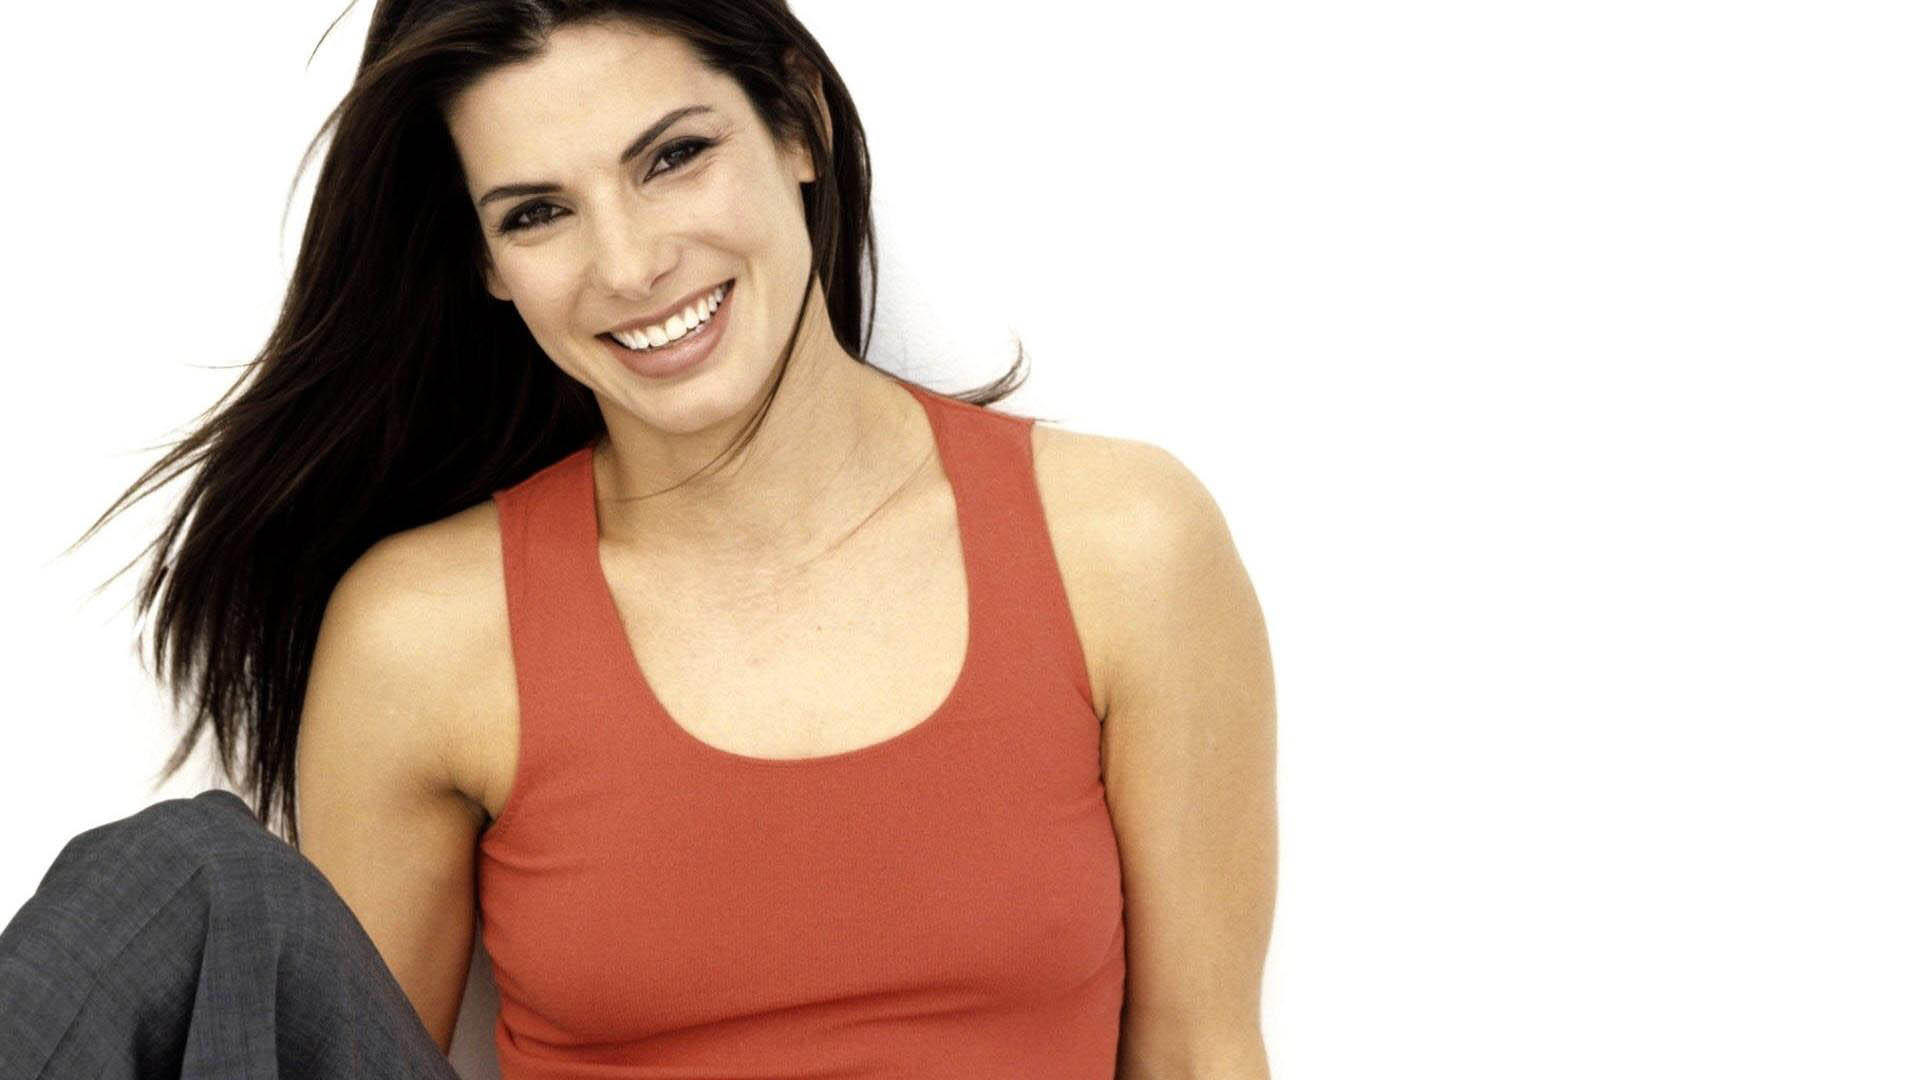 sandra bullock smile desktop wallpaper 51971